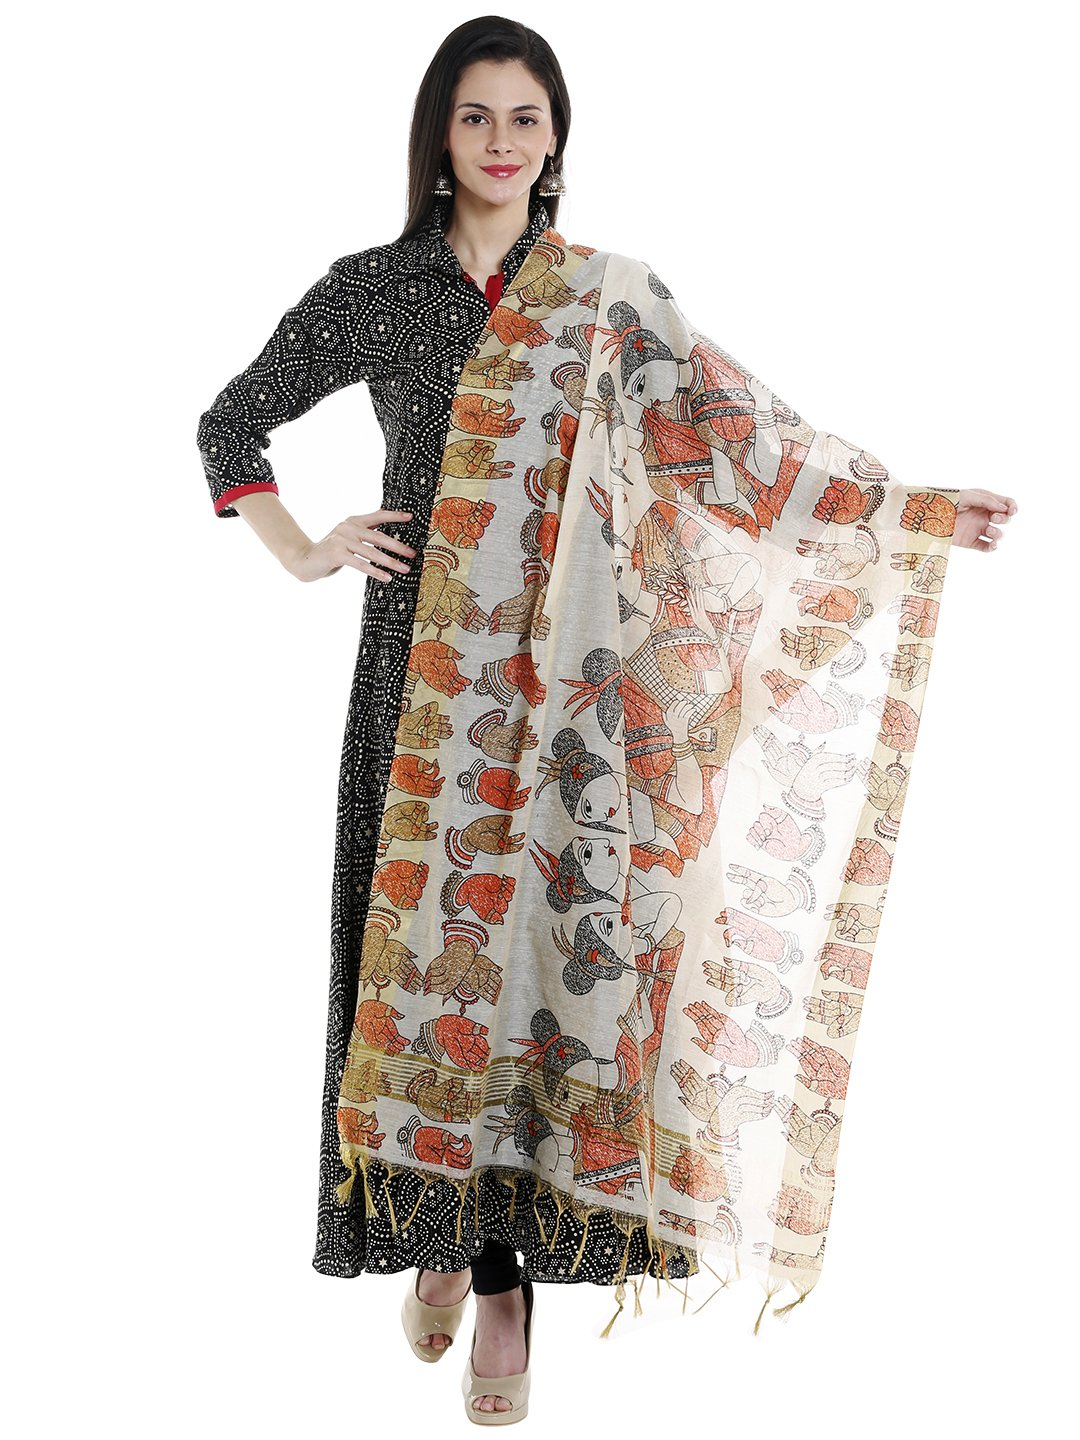 Dupatta Bazaar Woman's Cotton Silk Printed Orange Dupatta by Dupatta Bazaar